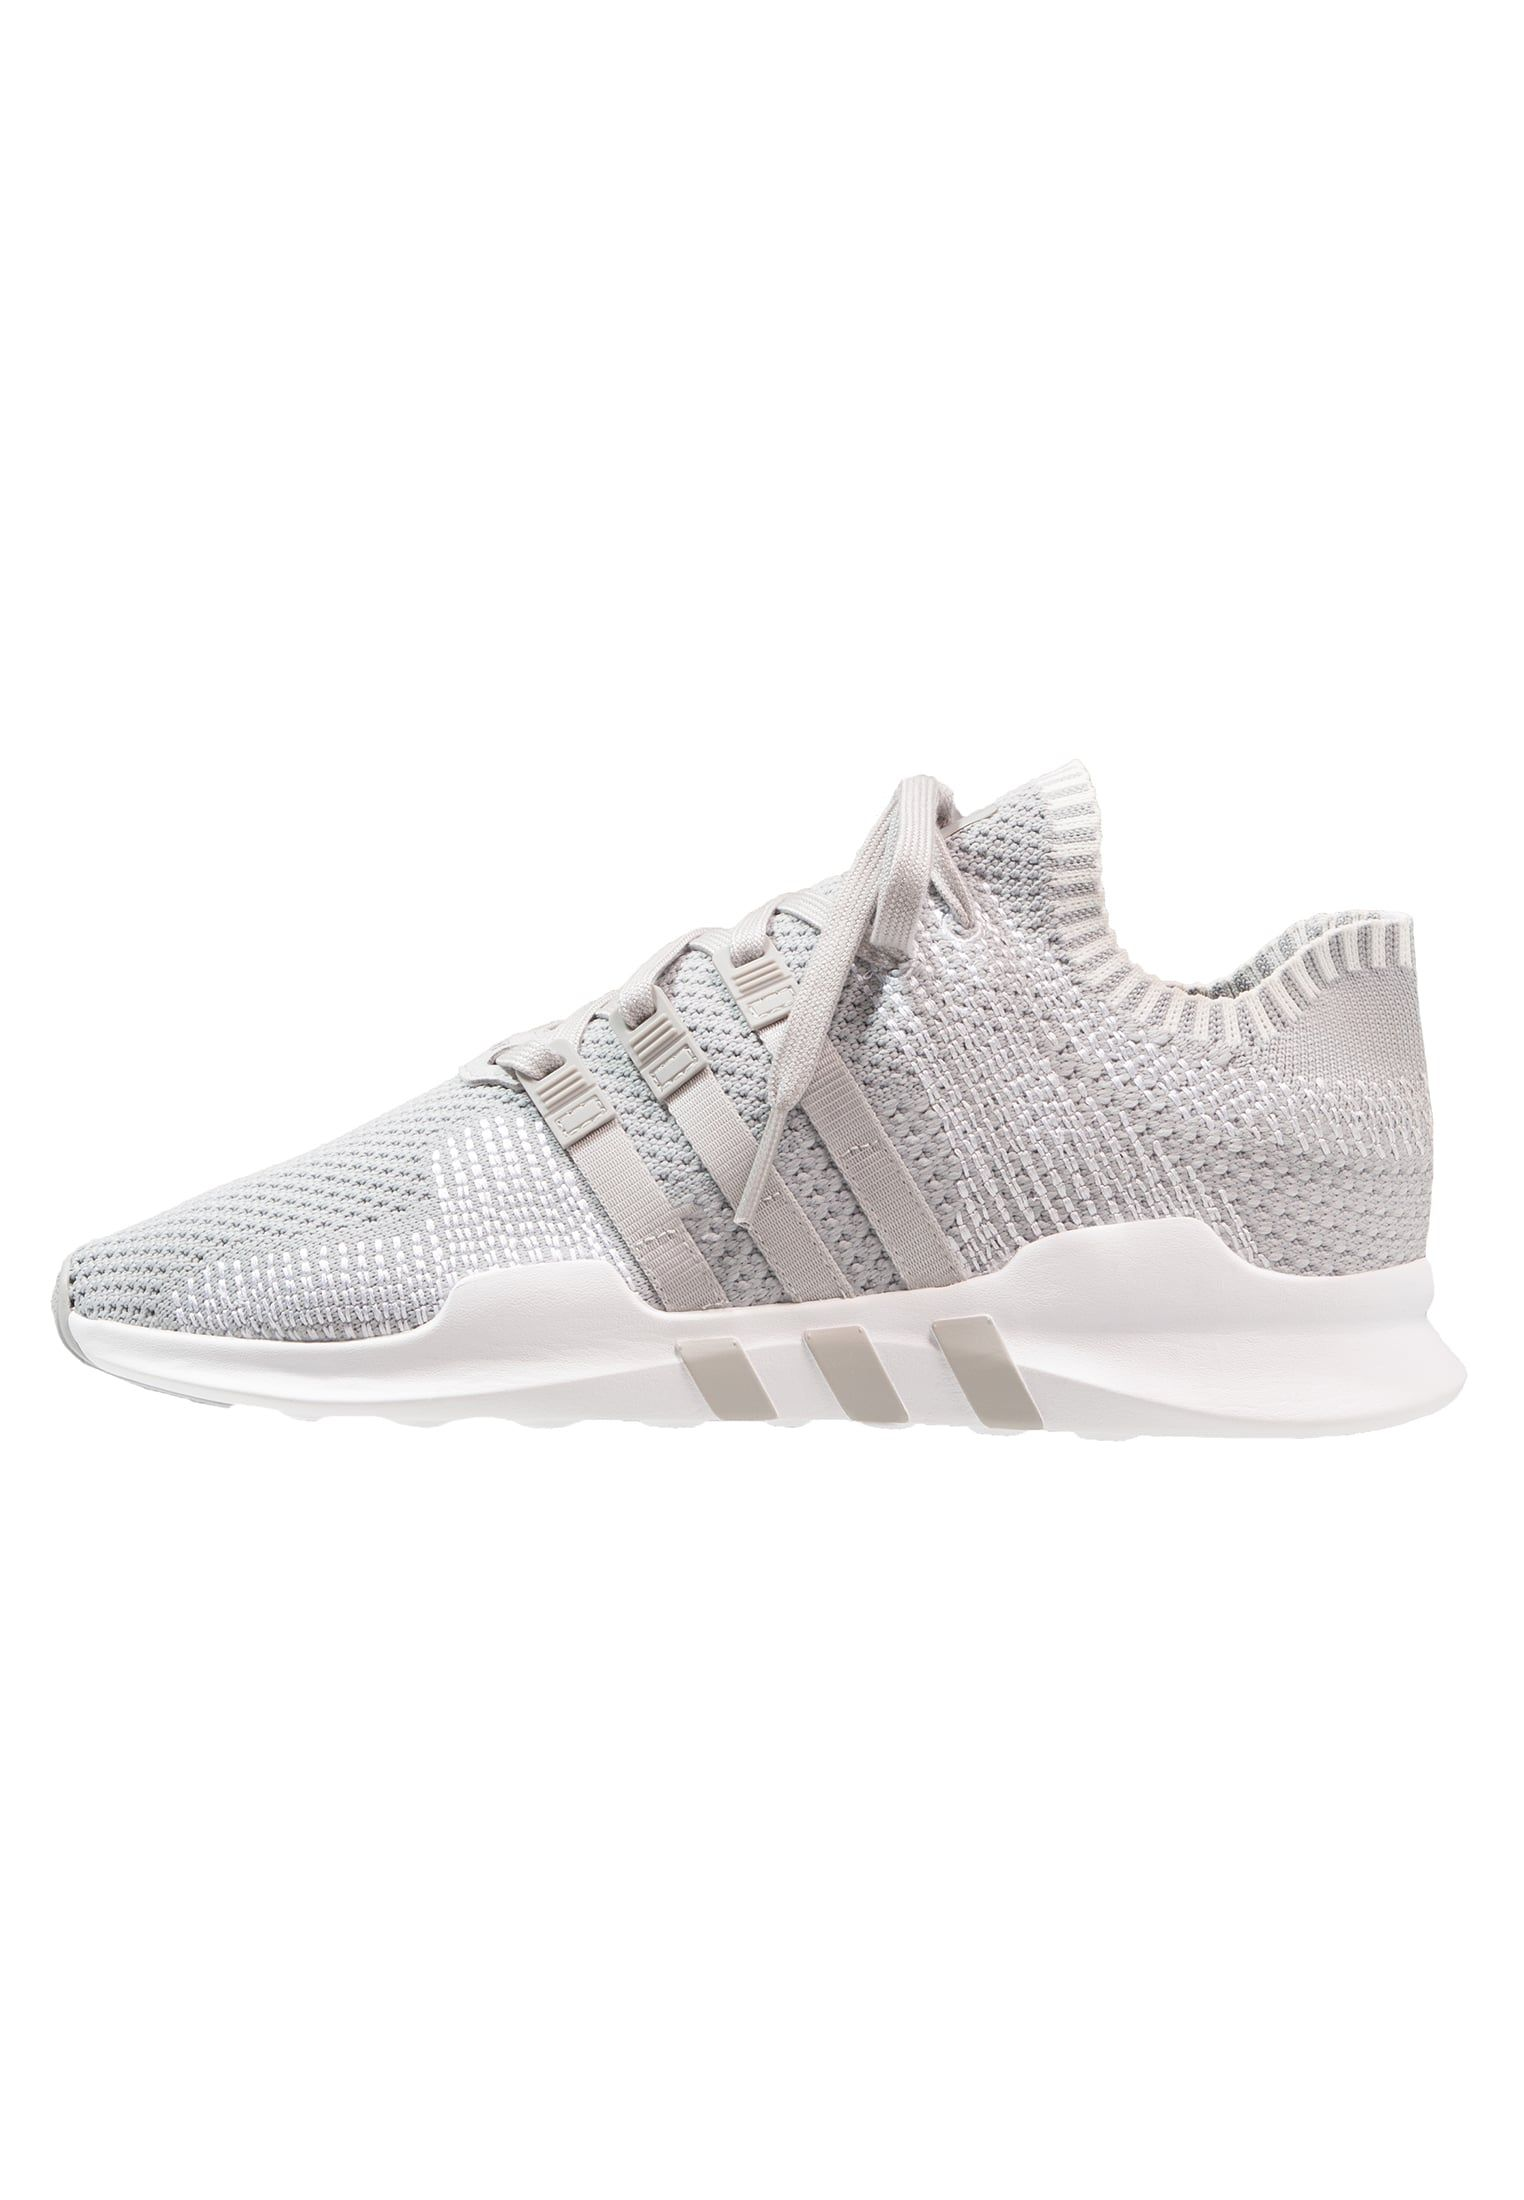 Grey White Baskets Basses Pk Adv Support Eqt Twofootwear DWE92IH